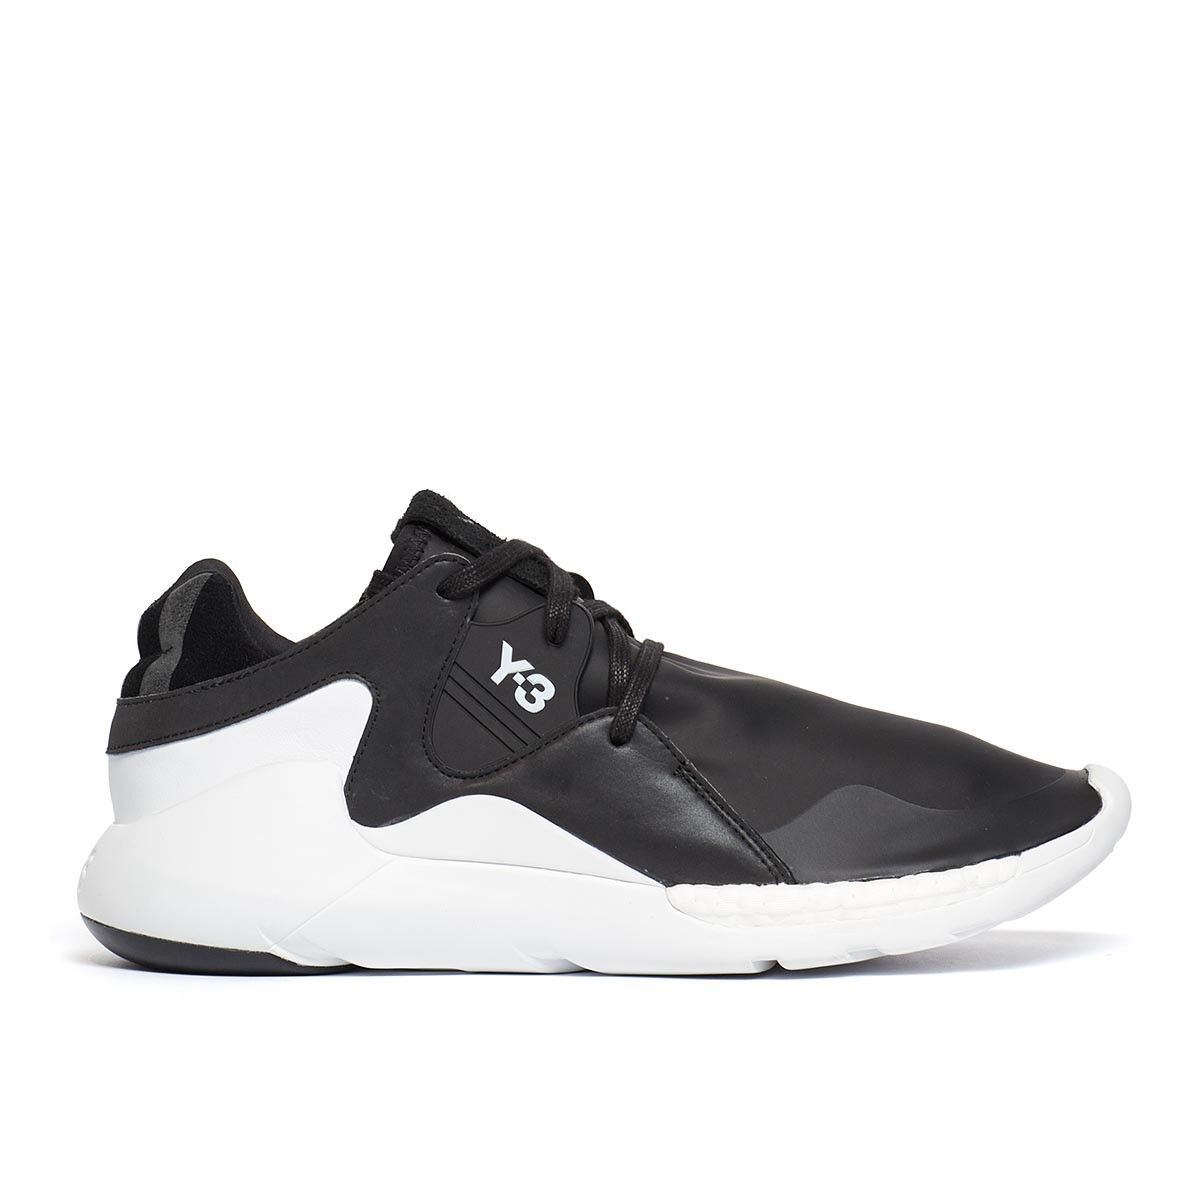 20a626f25c0ae QR Run sneakers from the F W2016-17 Y-3 by Yohji Yamamoto collection in  black